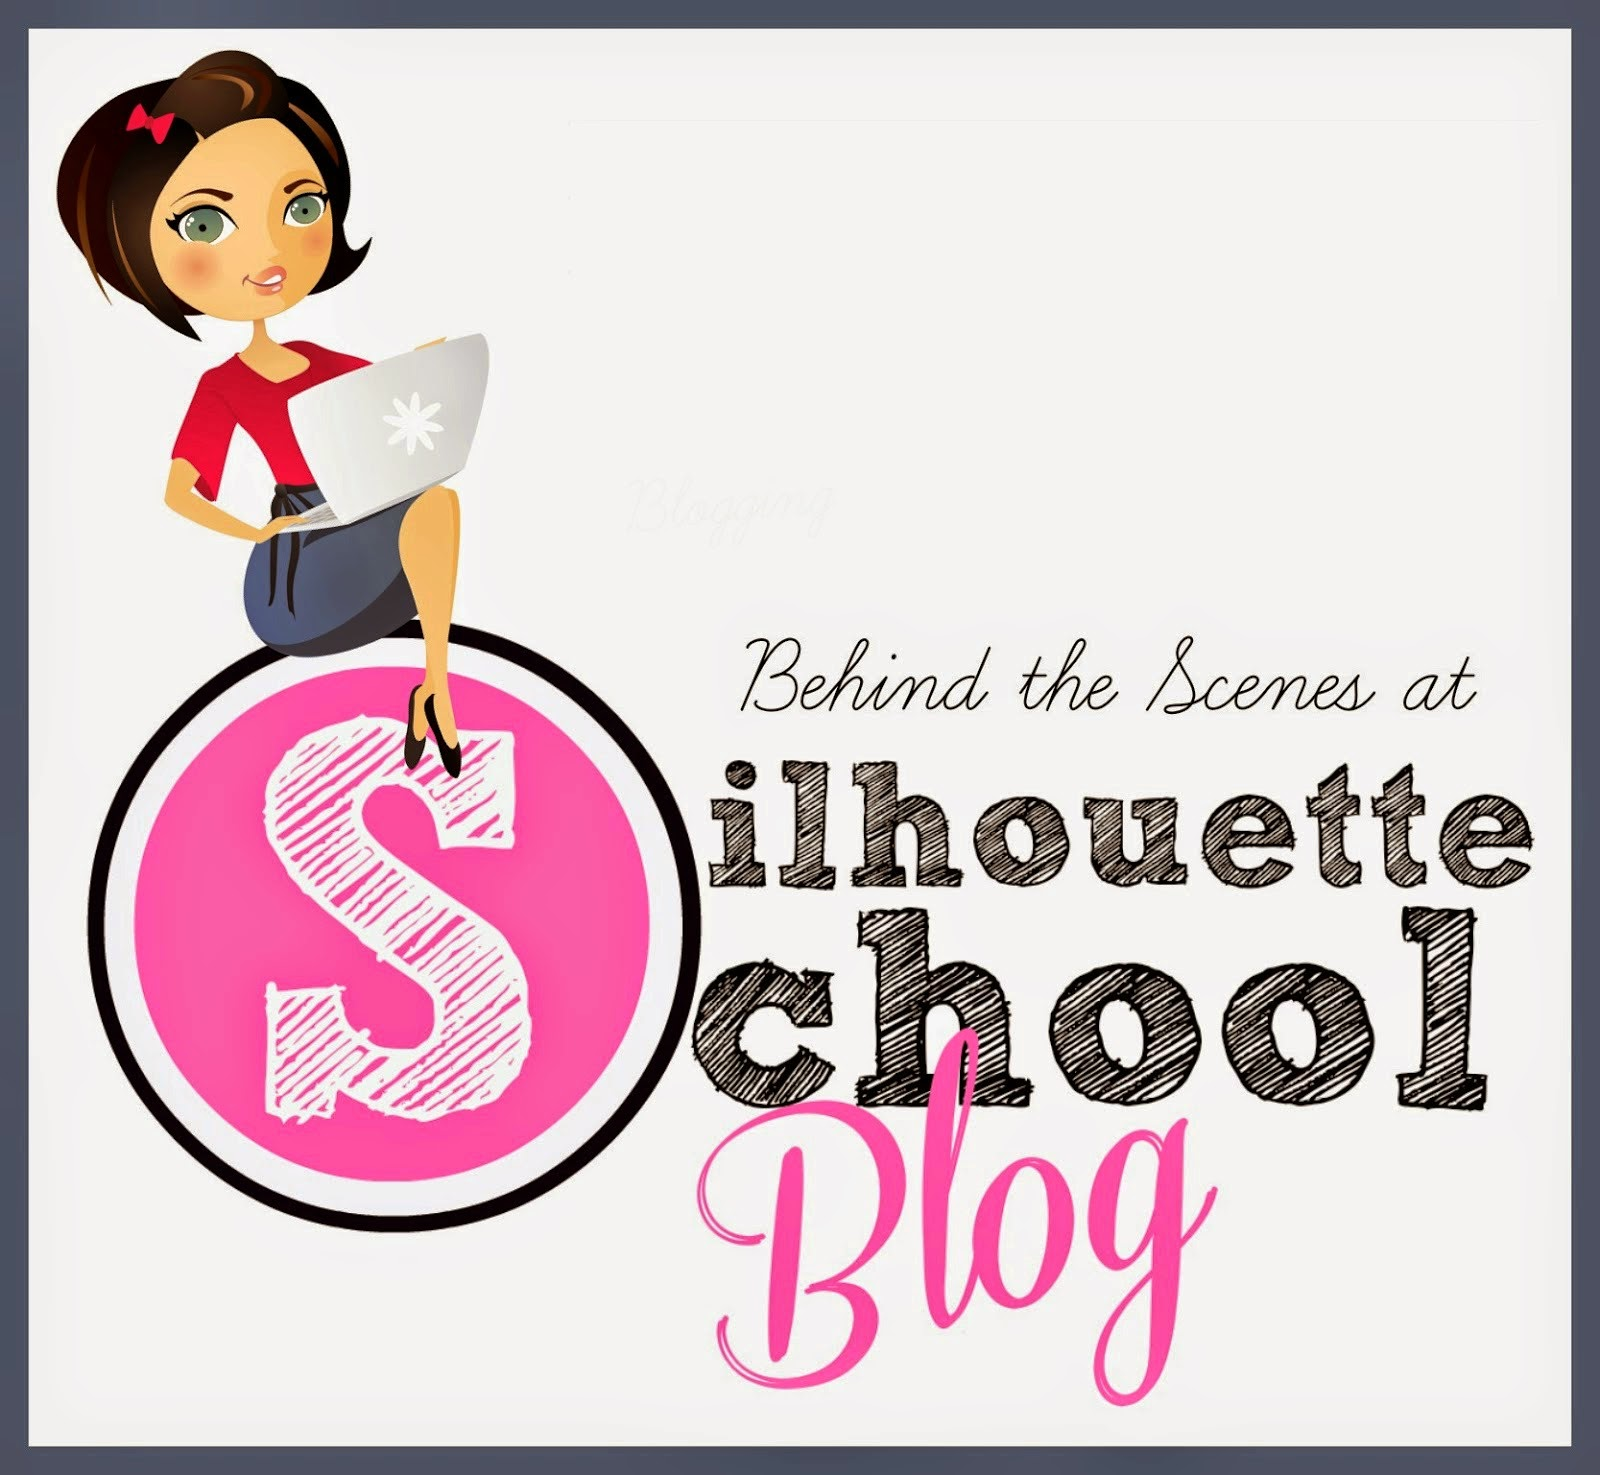 Behind the scenes, Silhouette School Blog